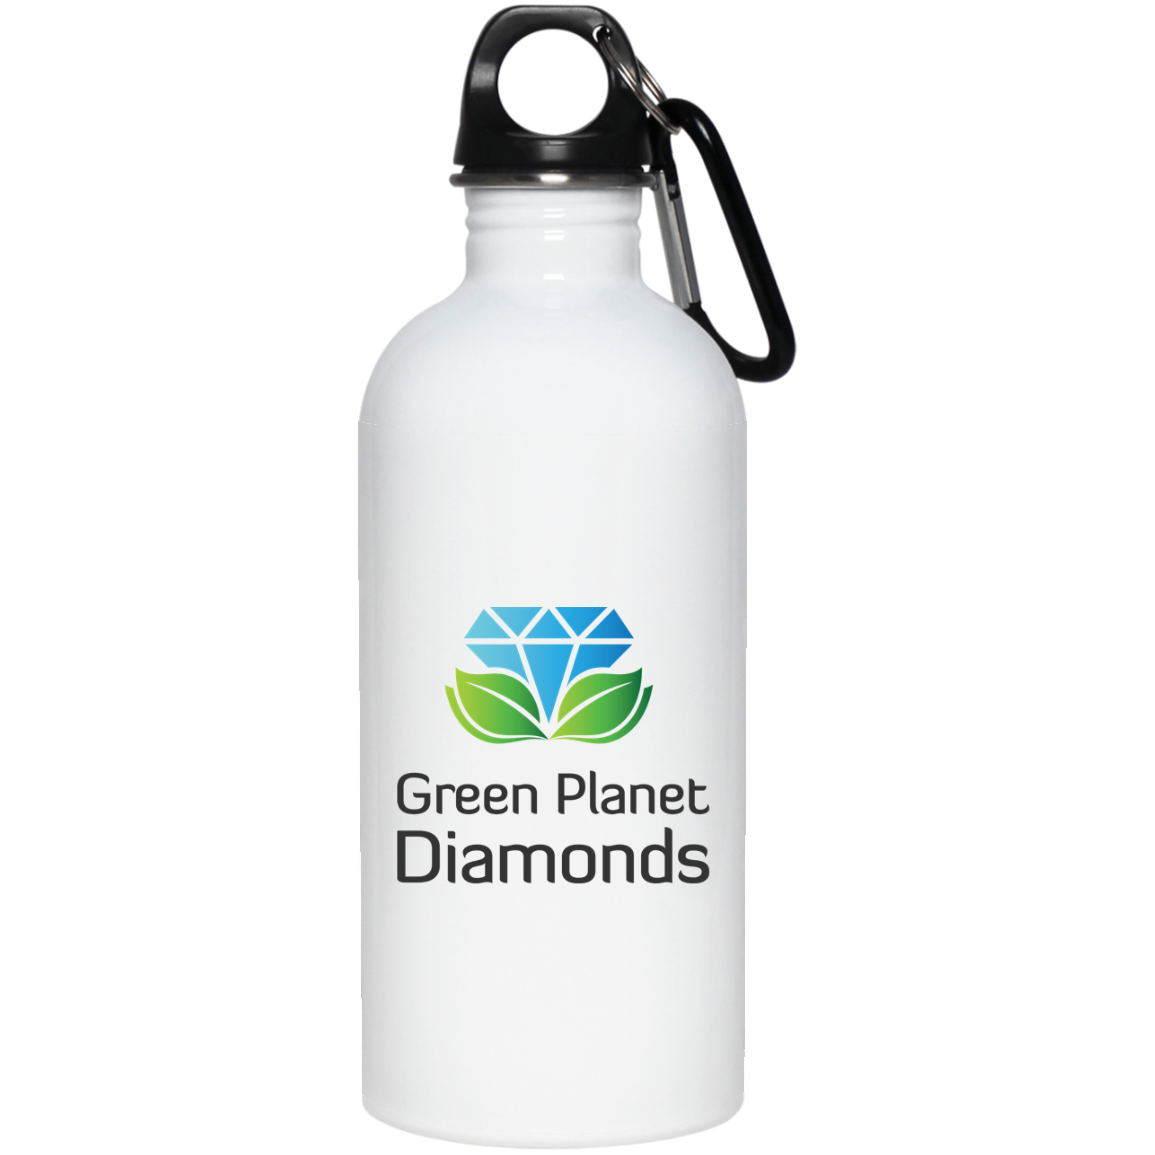 Green Planet Diamonds 20 oz. Stainless Steel Logo Water Bottle - Green Planet Diamonds